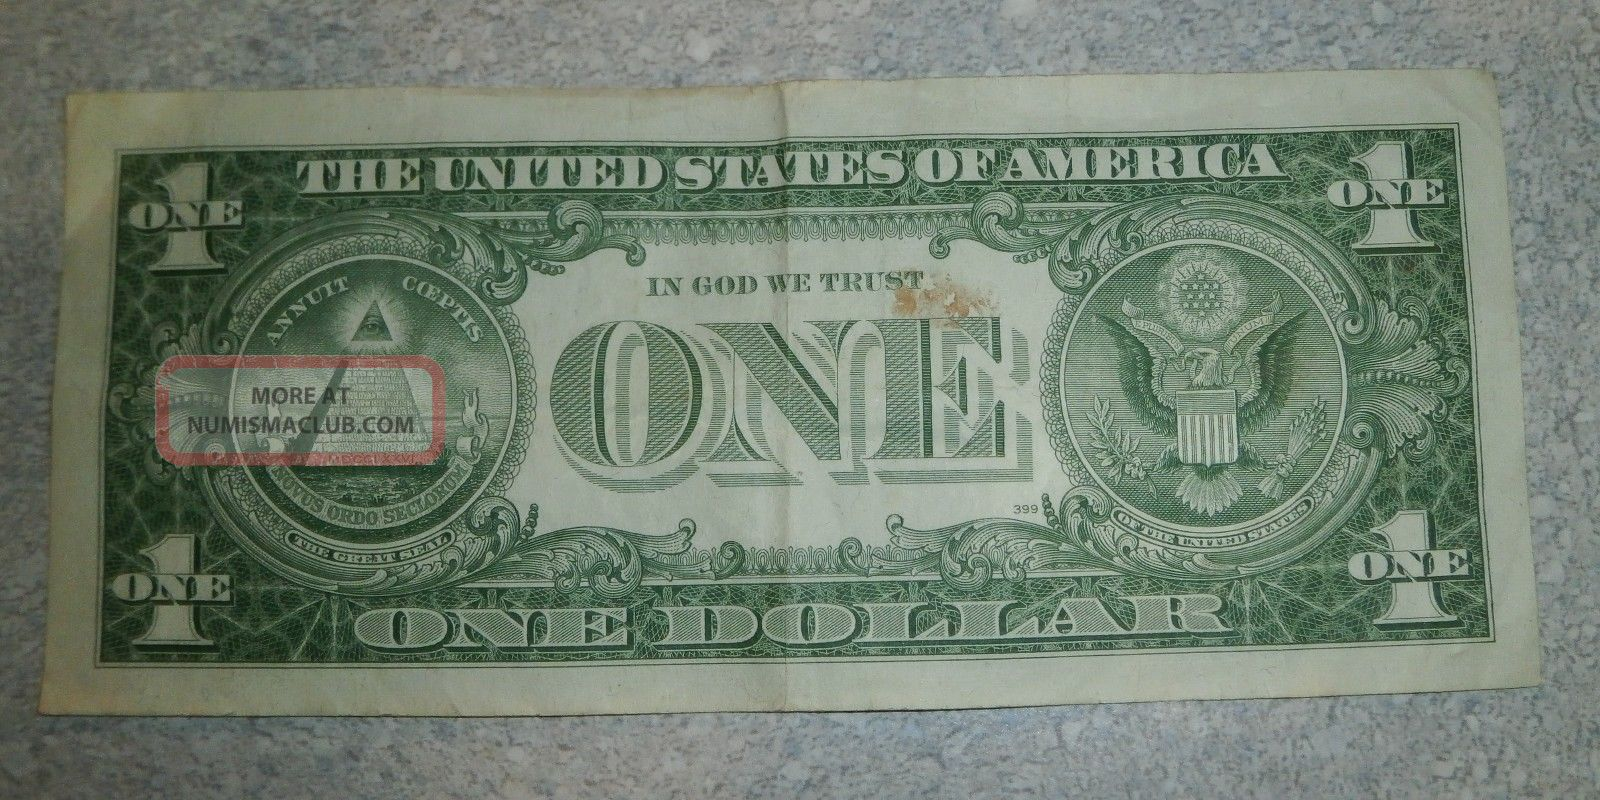 silver dollar bill certificate 1957 series states united enlarge